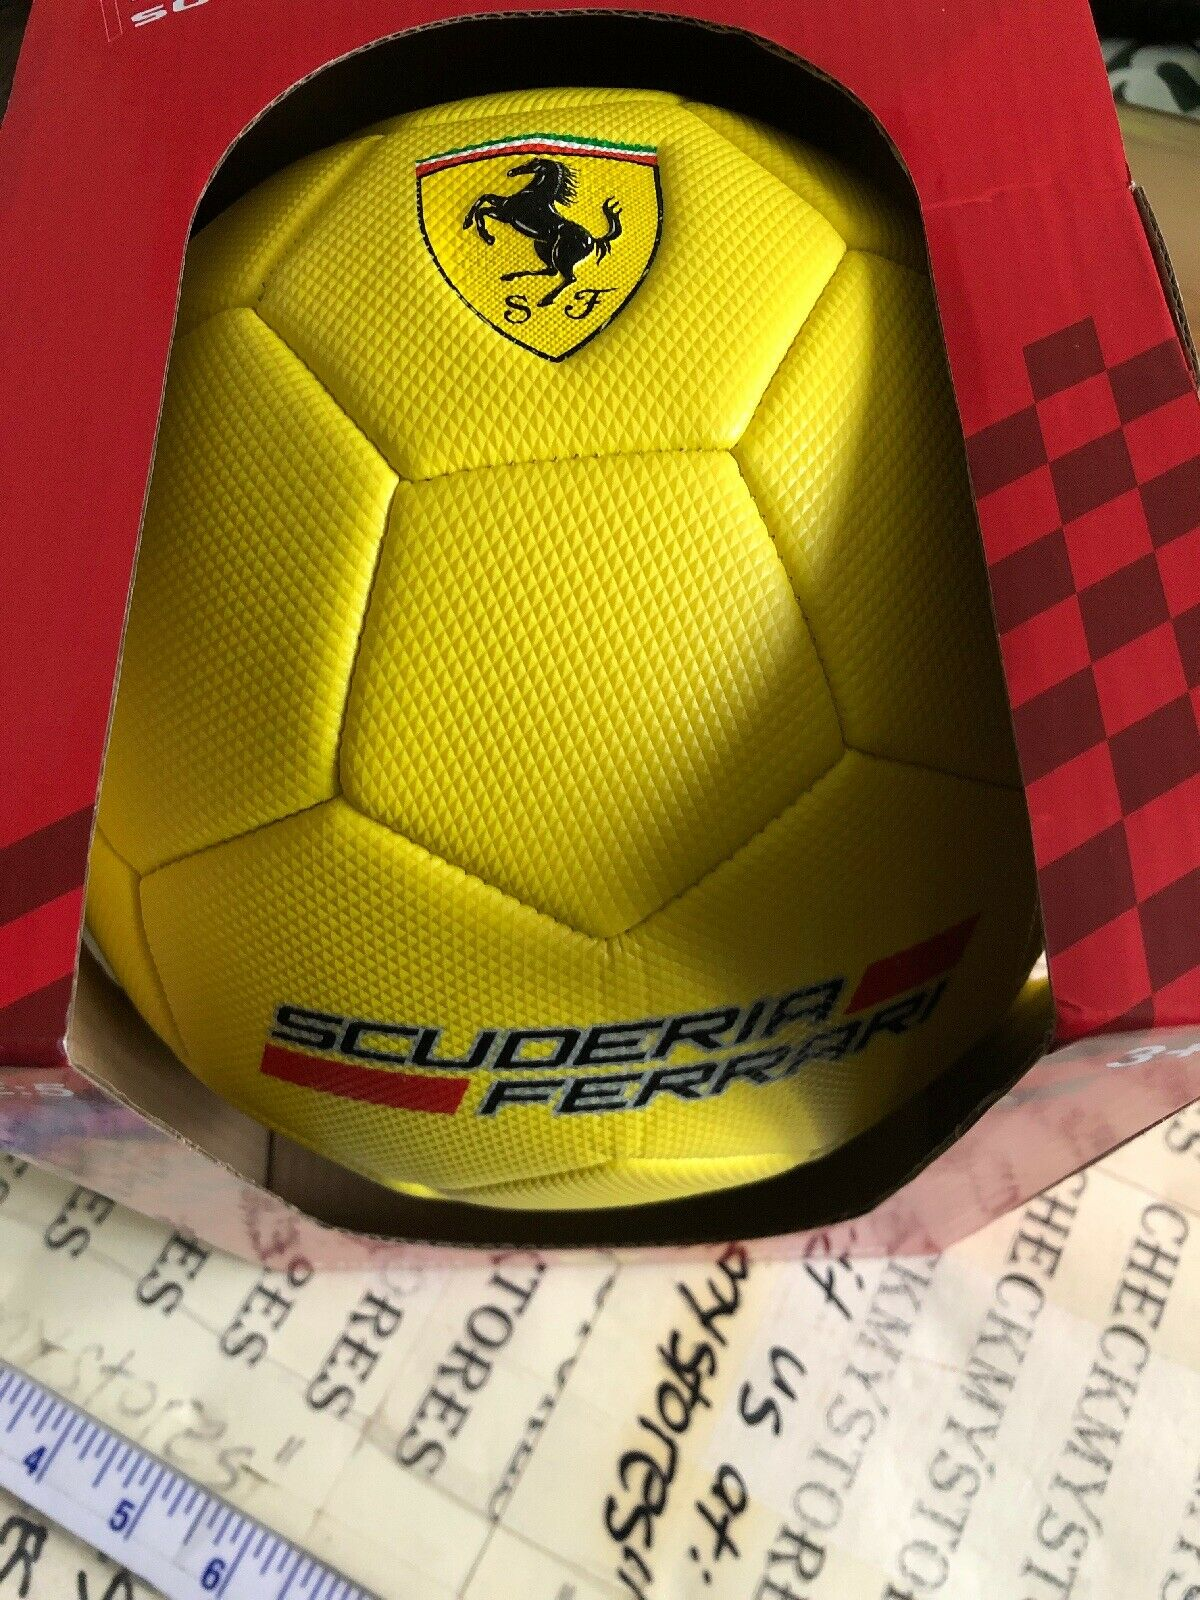 NEW Official licensed Scuderia Ferrari Soccer Ball Größe 5 Limited Edition Gelb